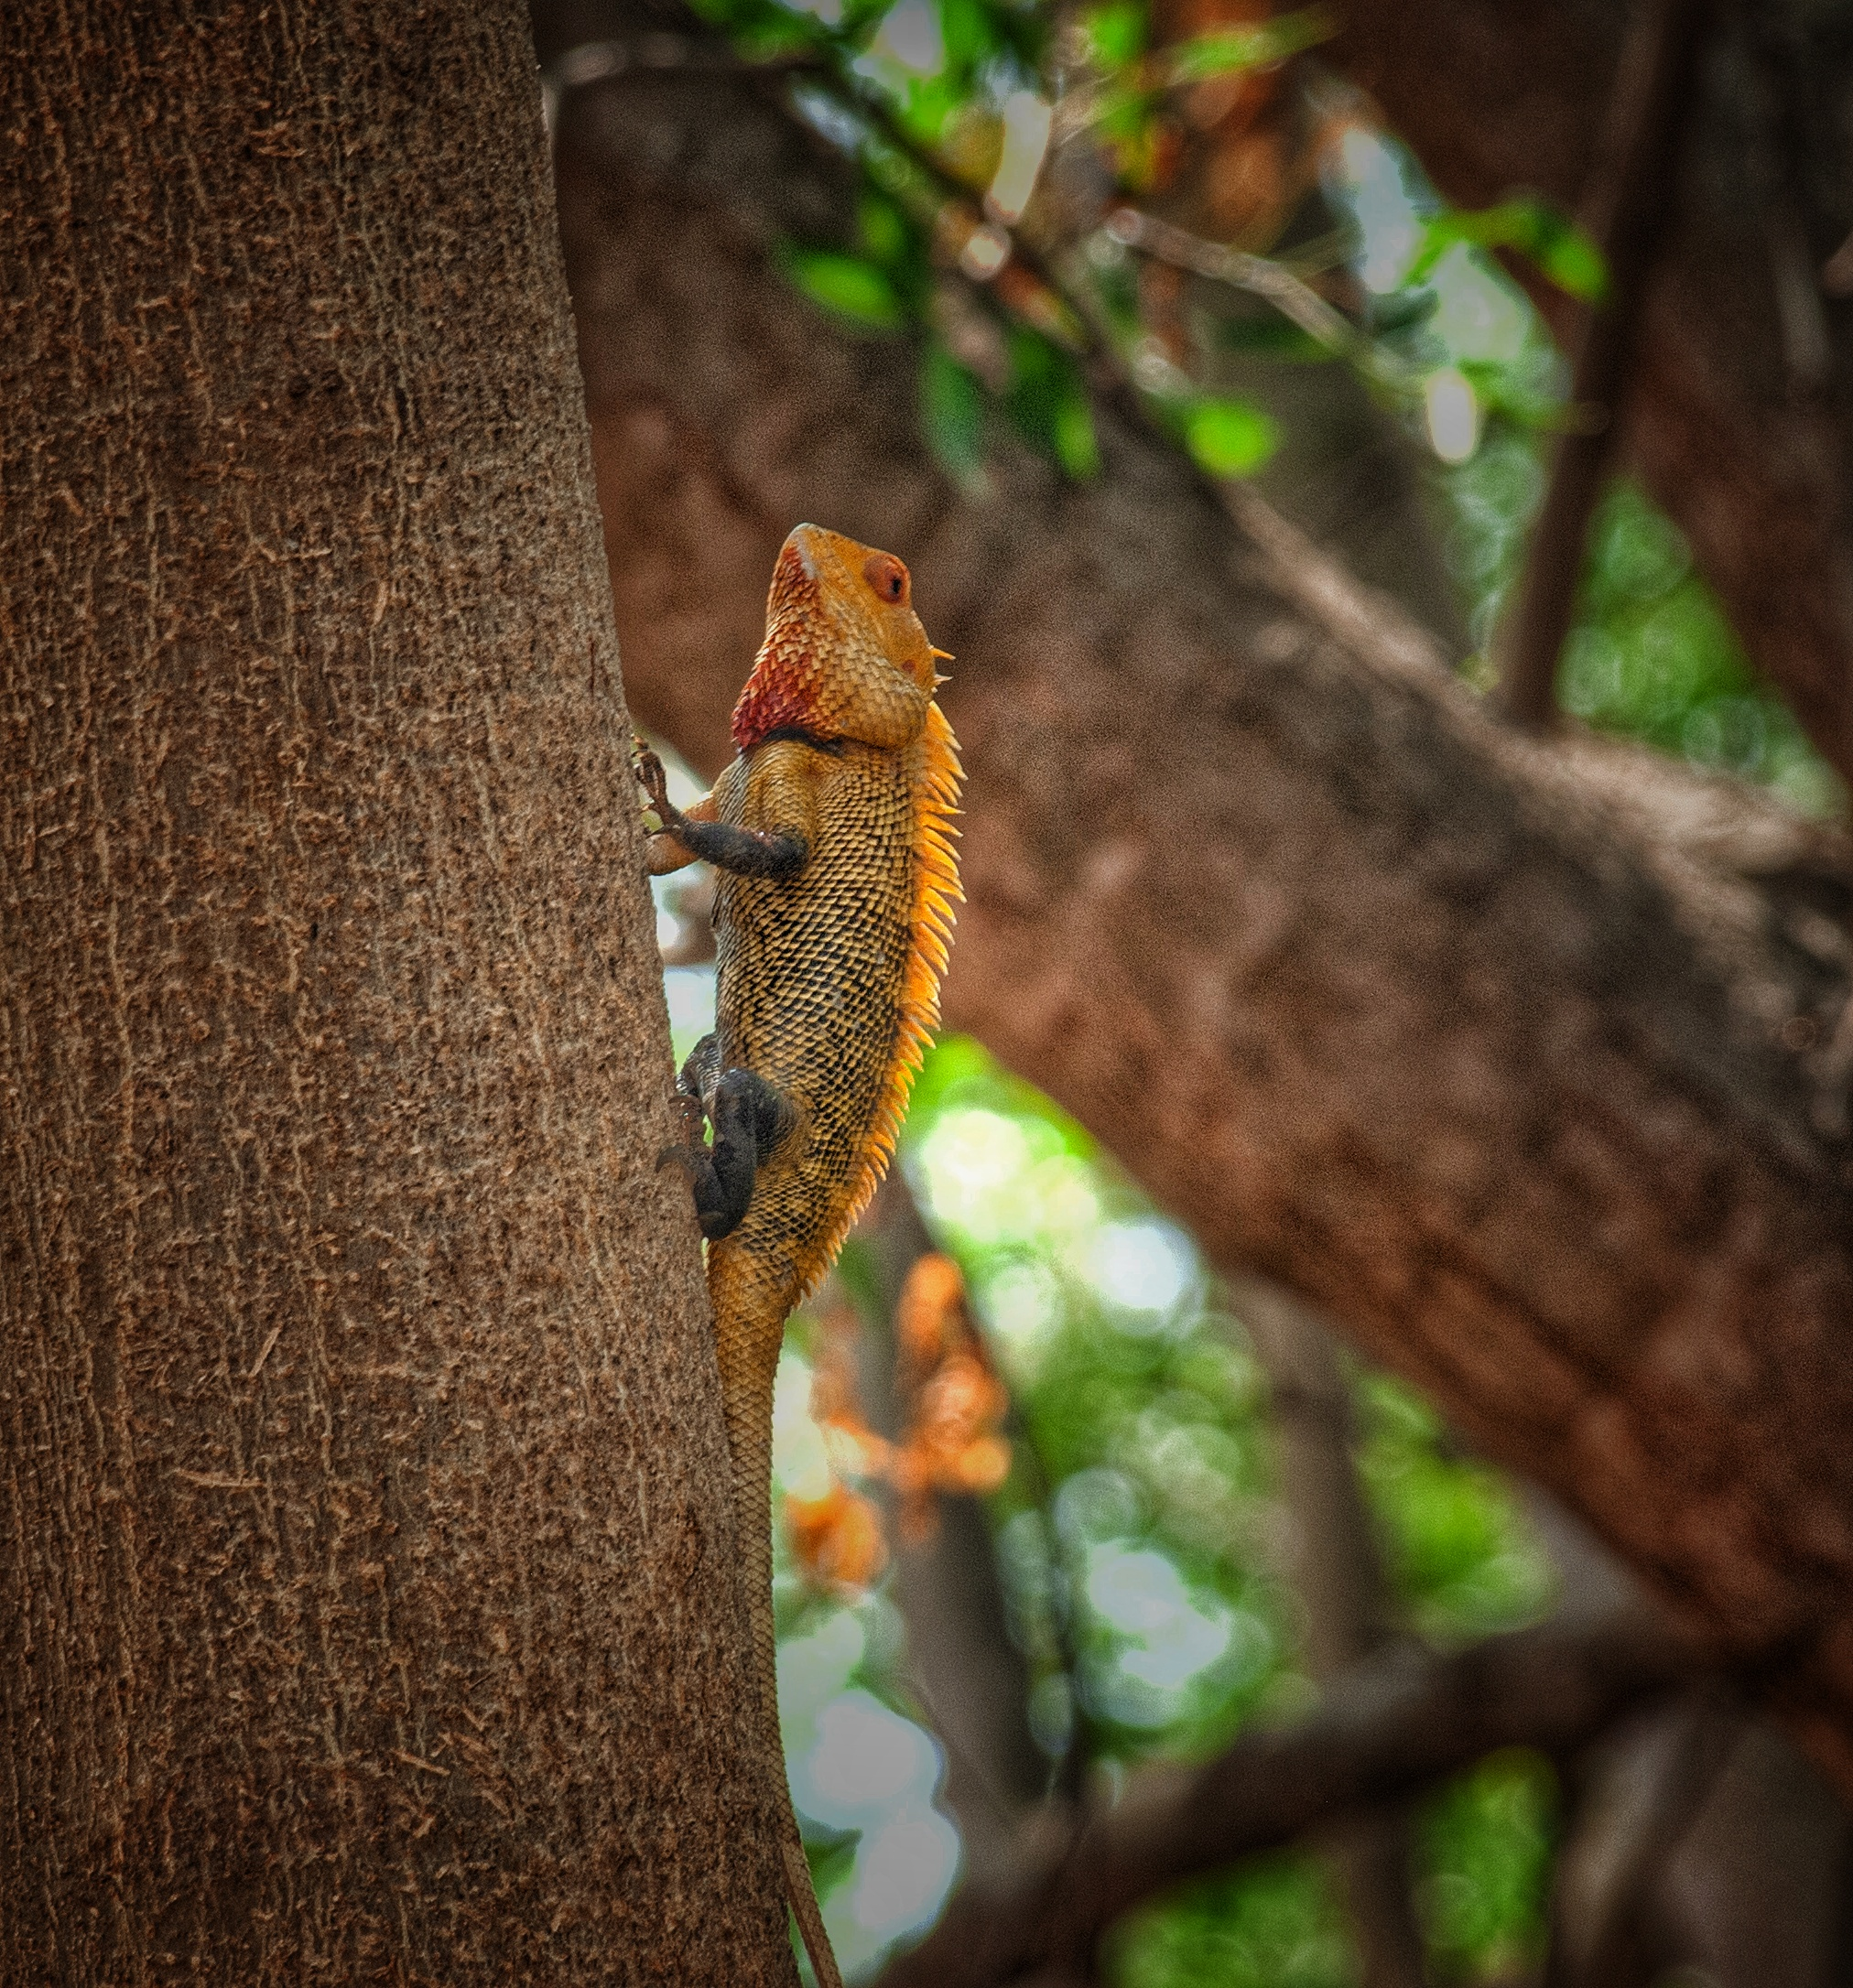 A chameleon on a tree